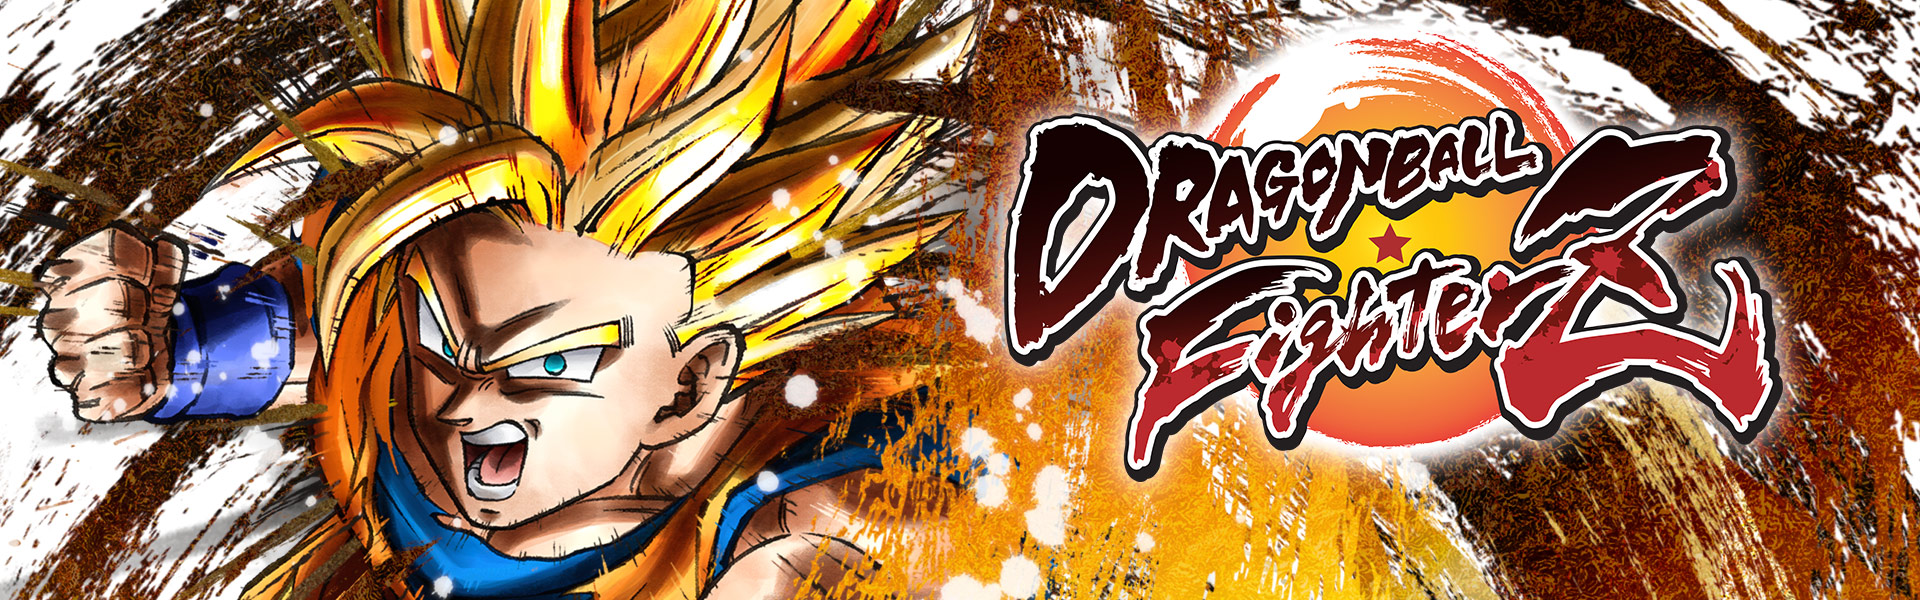 Dragon Ball FighterZ, Super Saiyan Goku, de frente, atacando